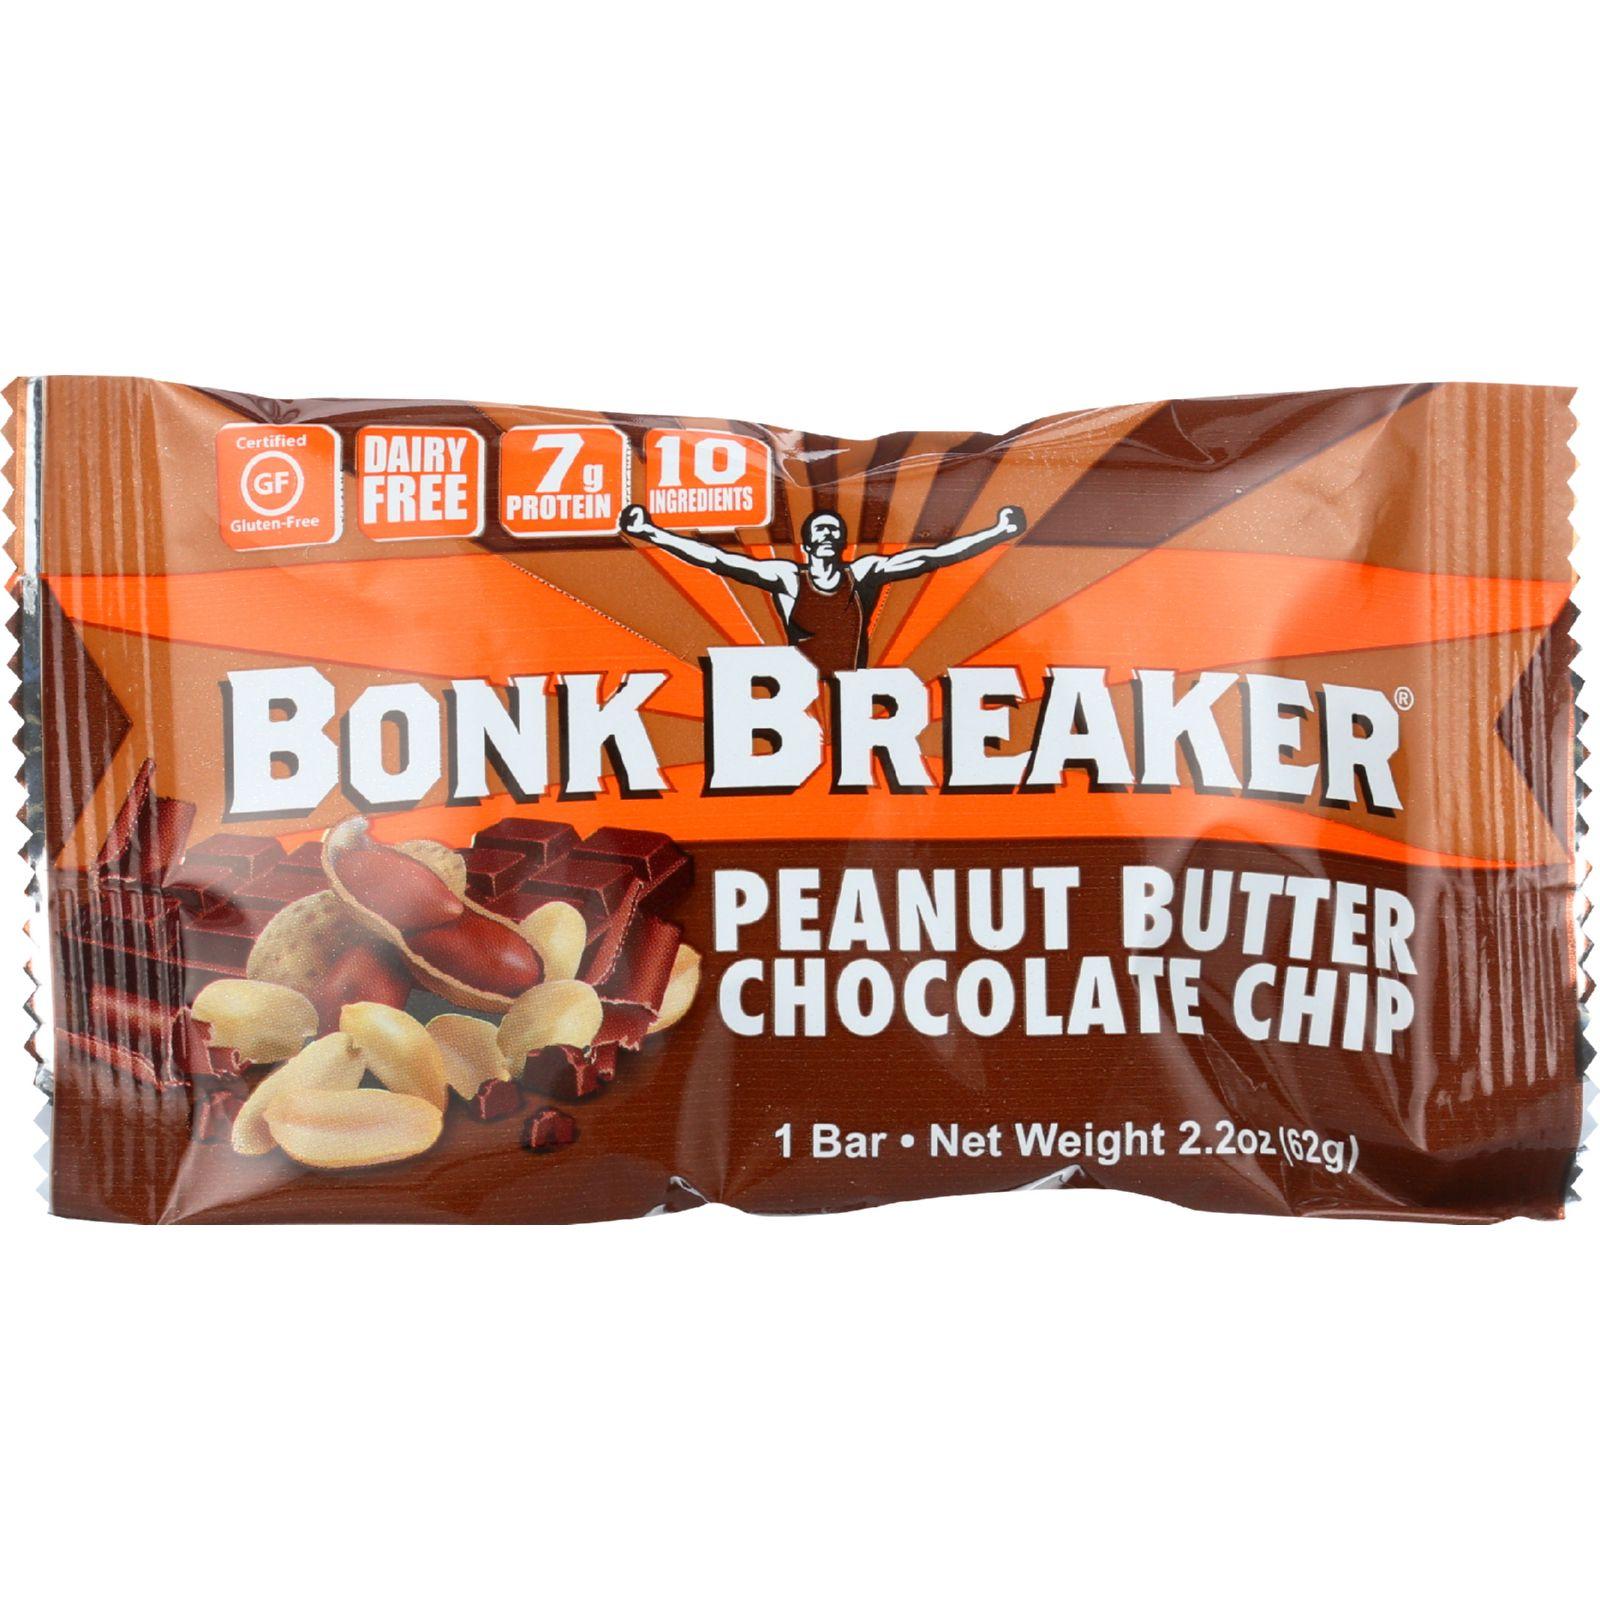 Bonk Breaker Energy Bar - Peanut Butter Chocolate Chip - 2.2 oz - case of 12